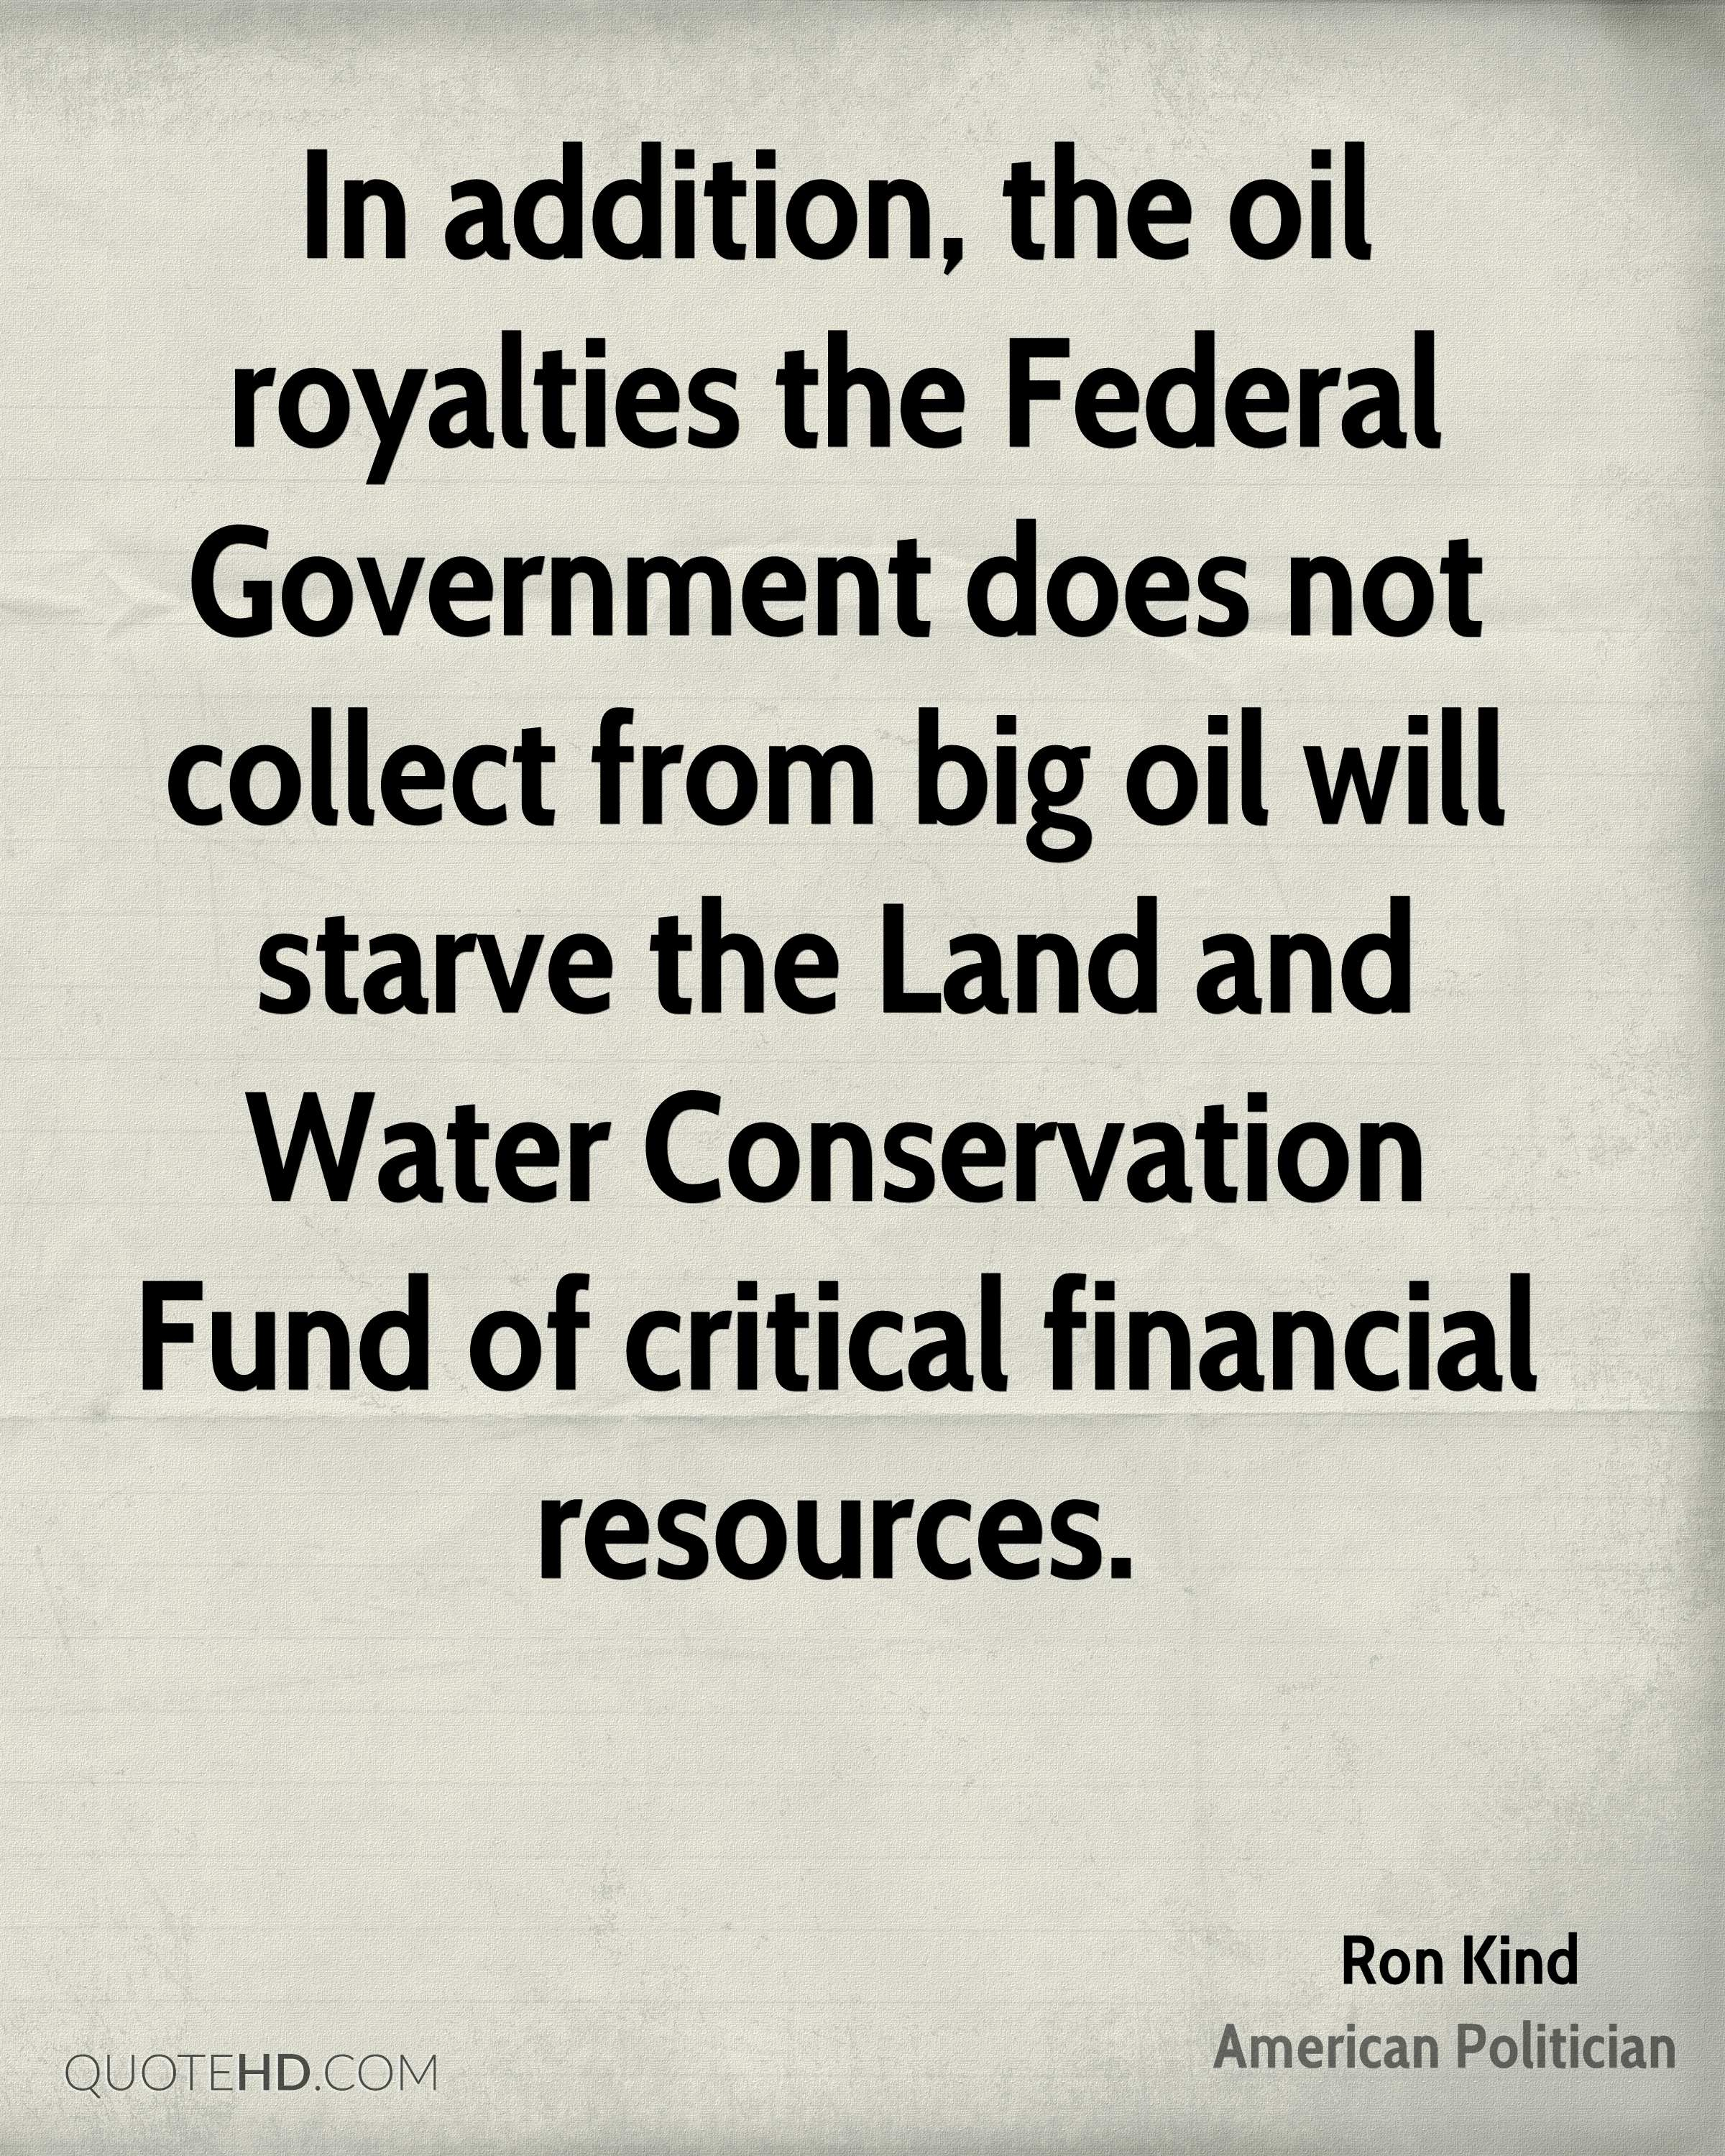 In addition, the oil royalties the Federal Government does not collect from big oil will starve the Land and Water Conservation Fund of critical financial resources.